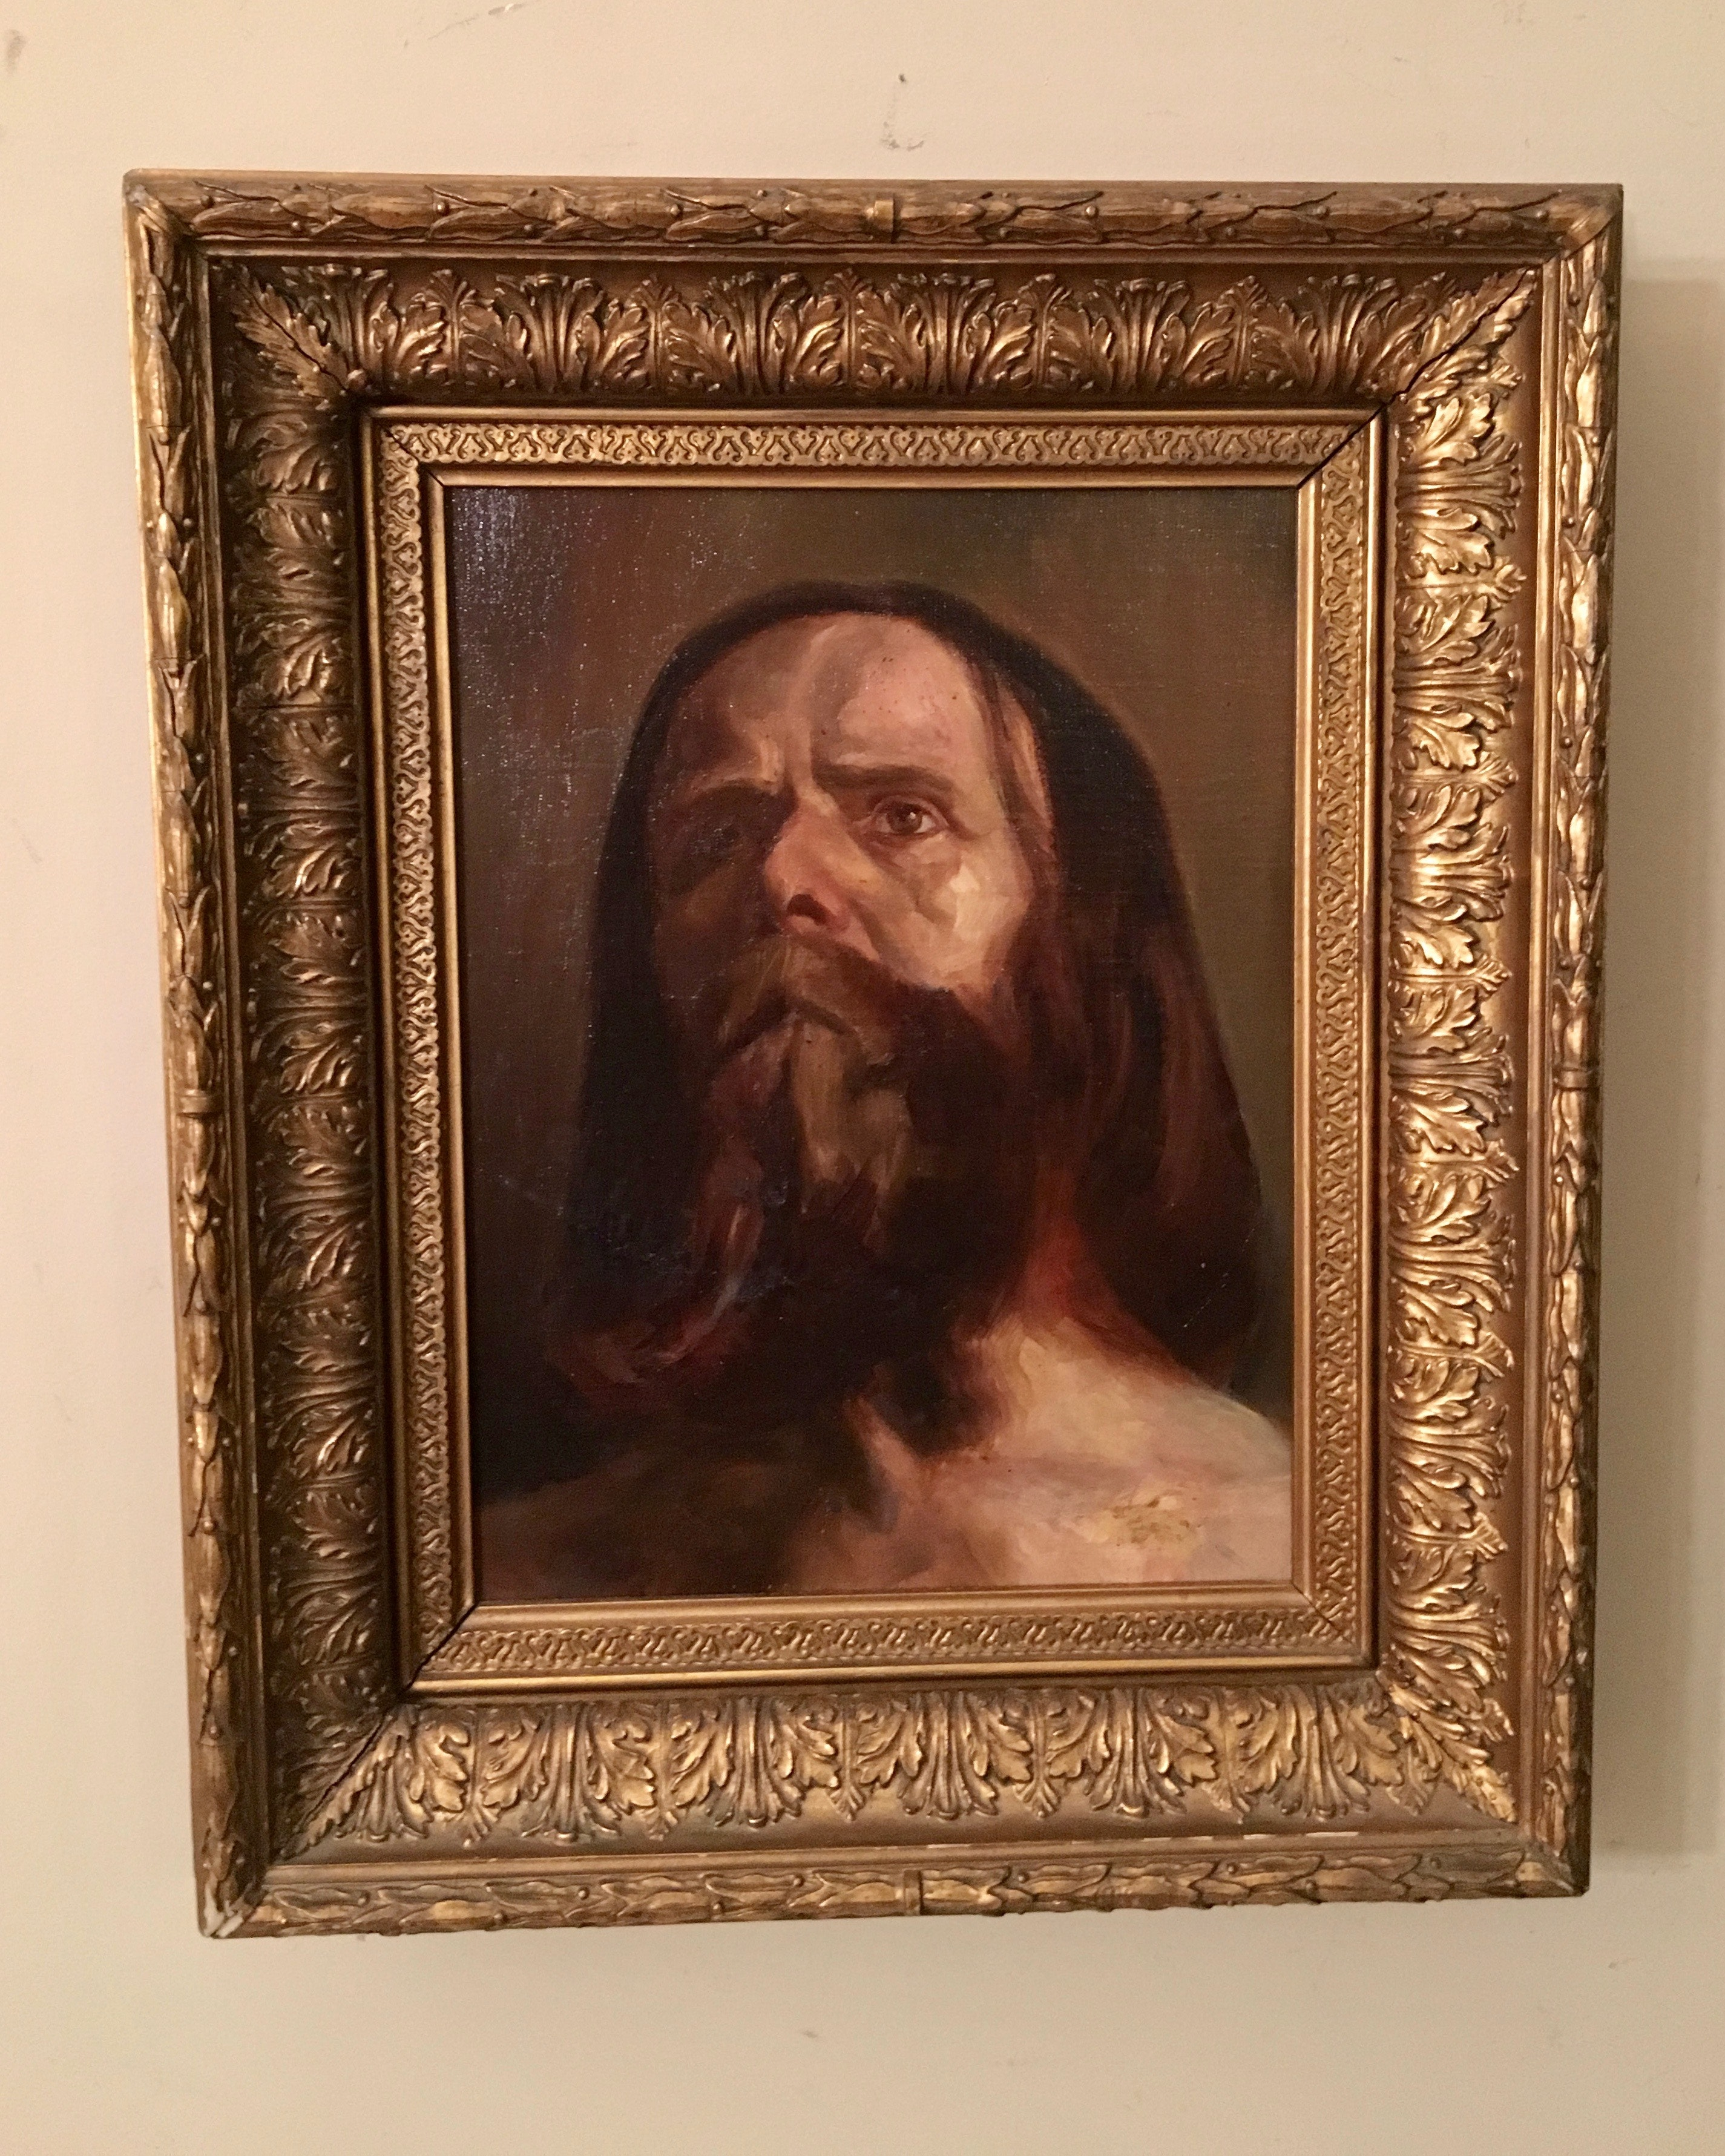 """Old Master"" Style Oil on Canvas of Bearded Man, c. 1900"